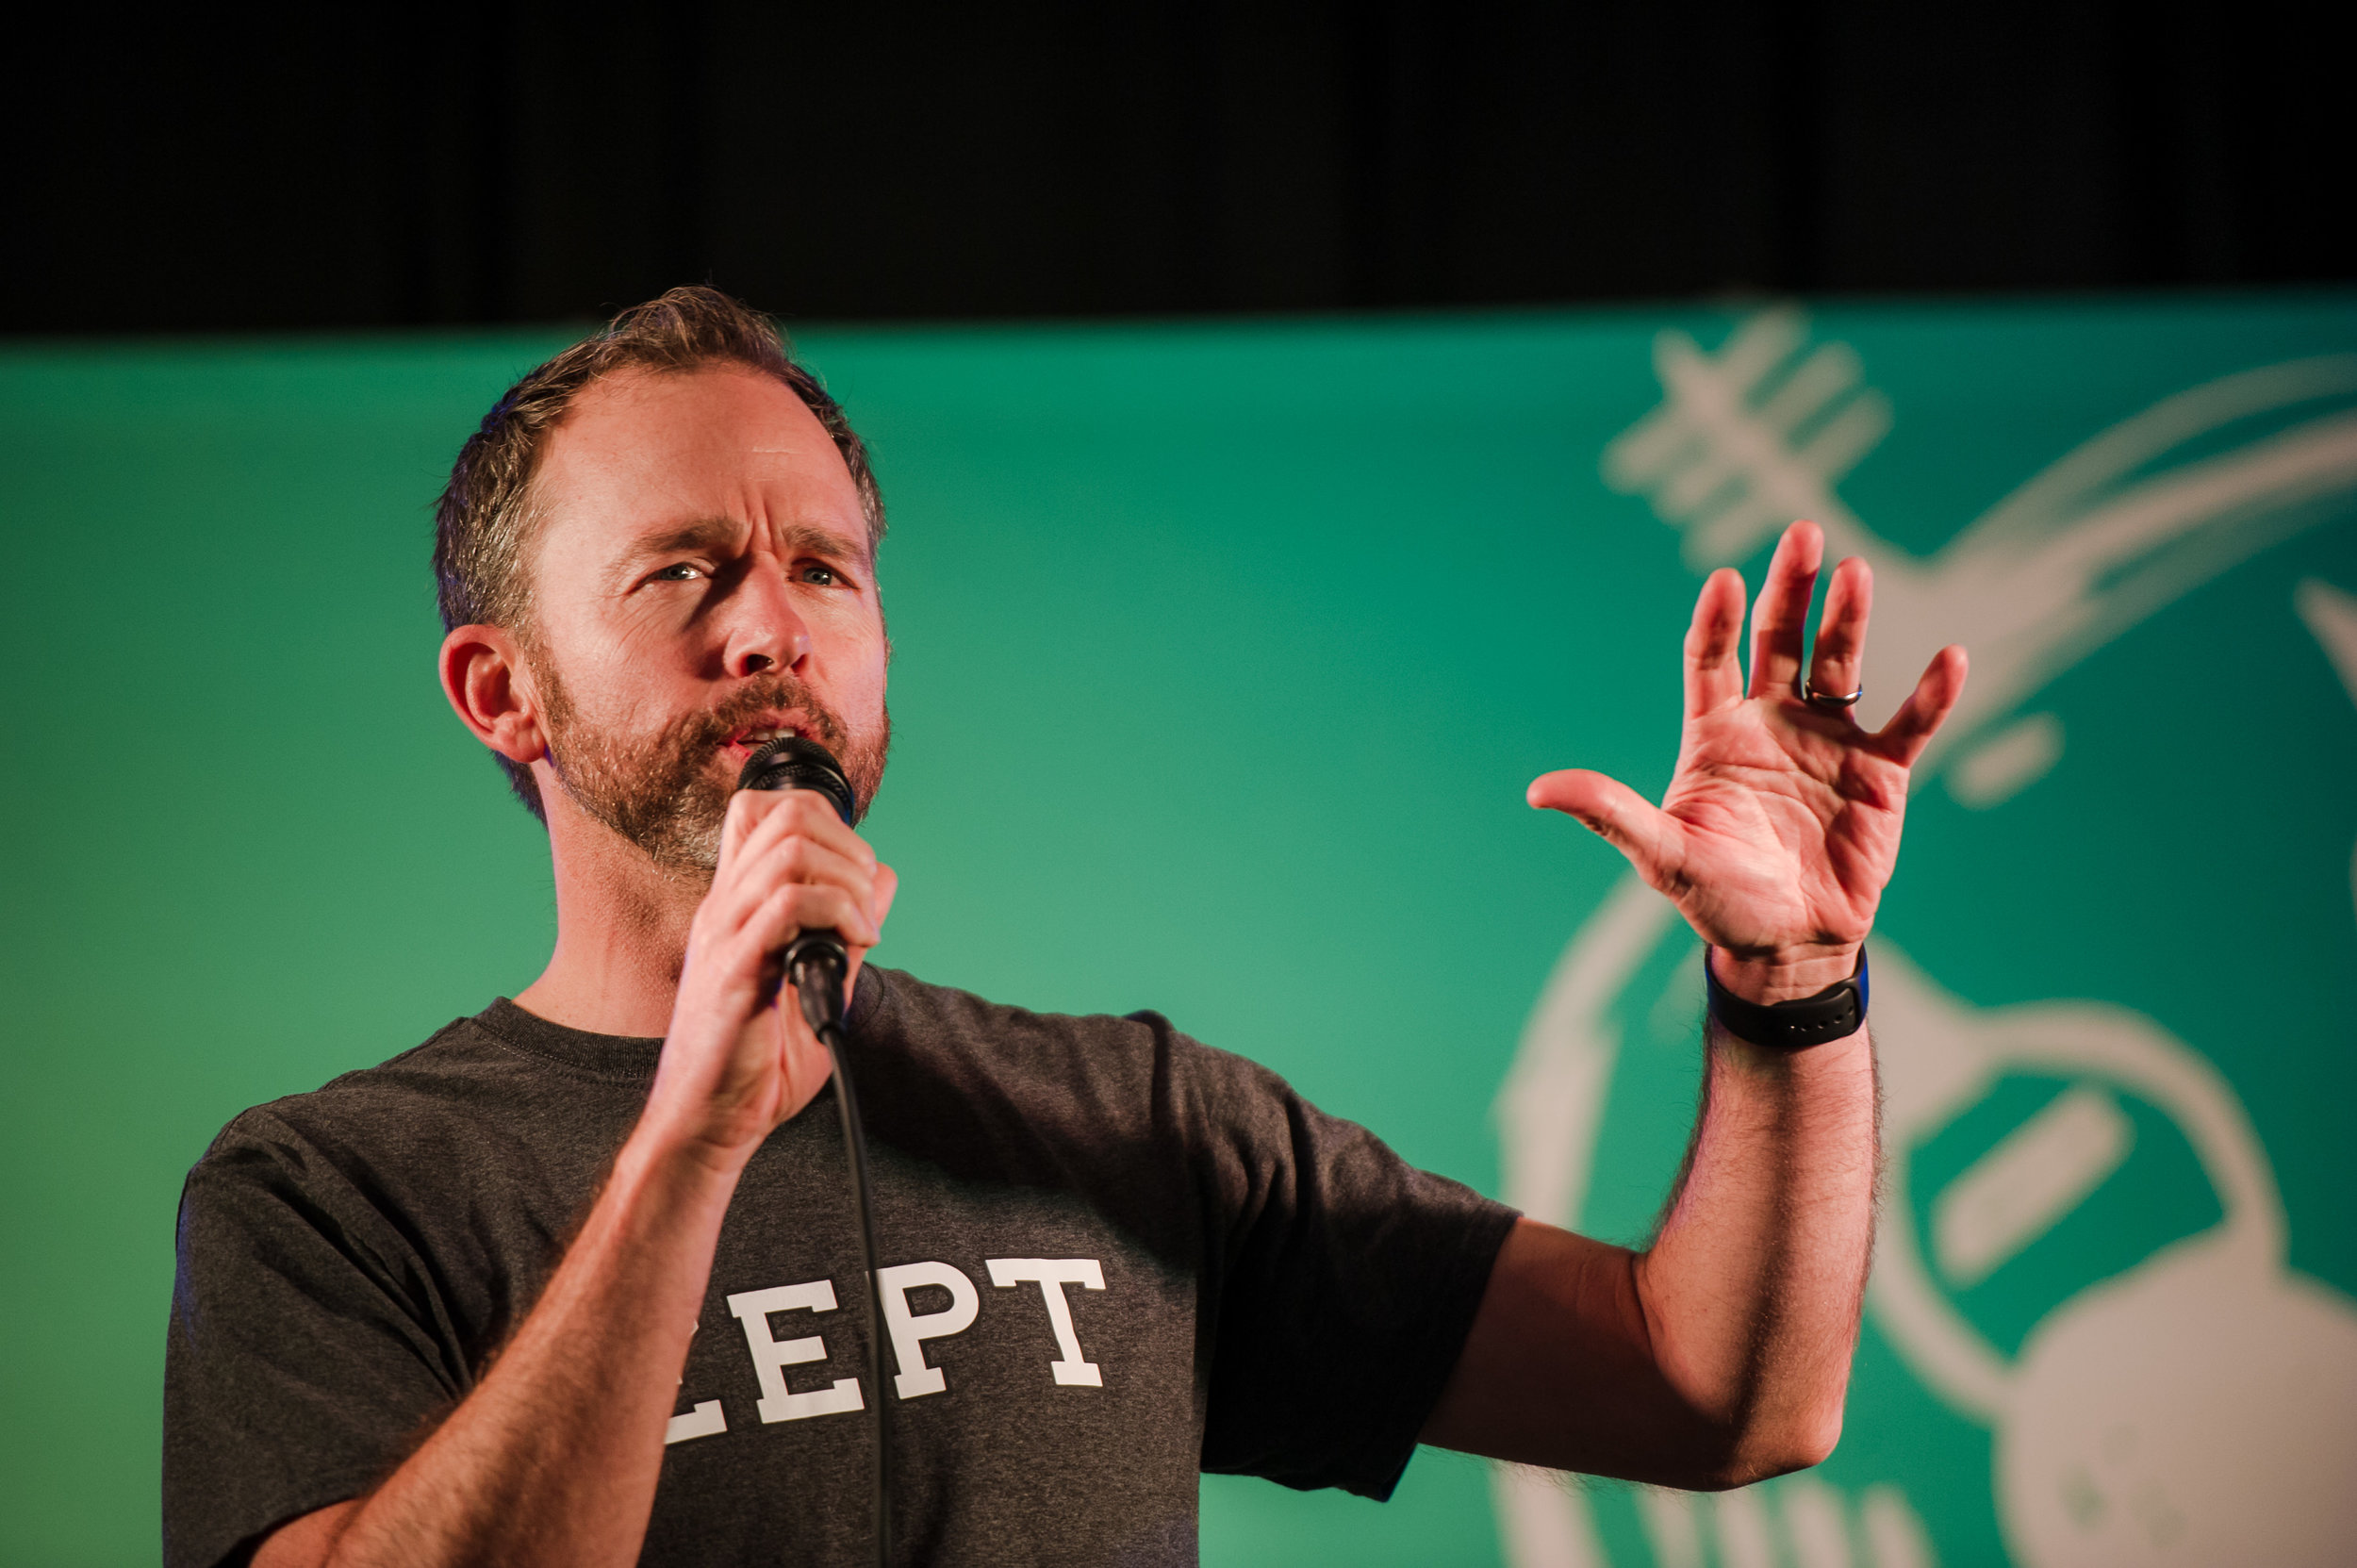 Gregg Oldring, CEO - Zept, pitches to the crowd at Launch Party 8.